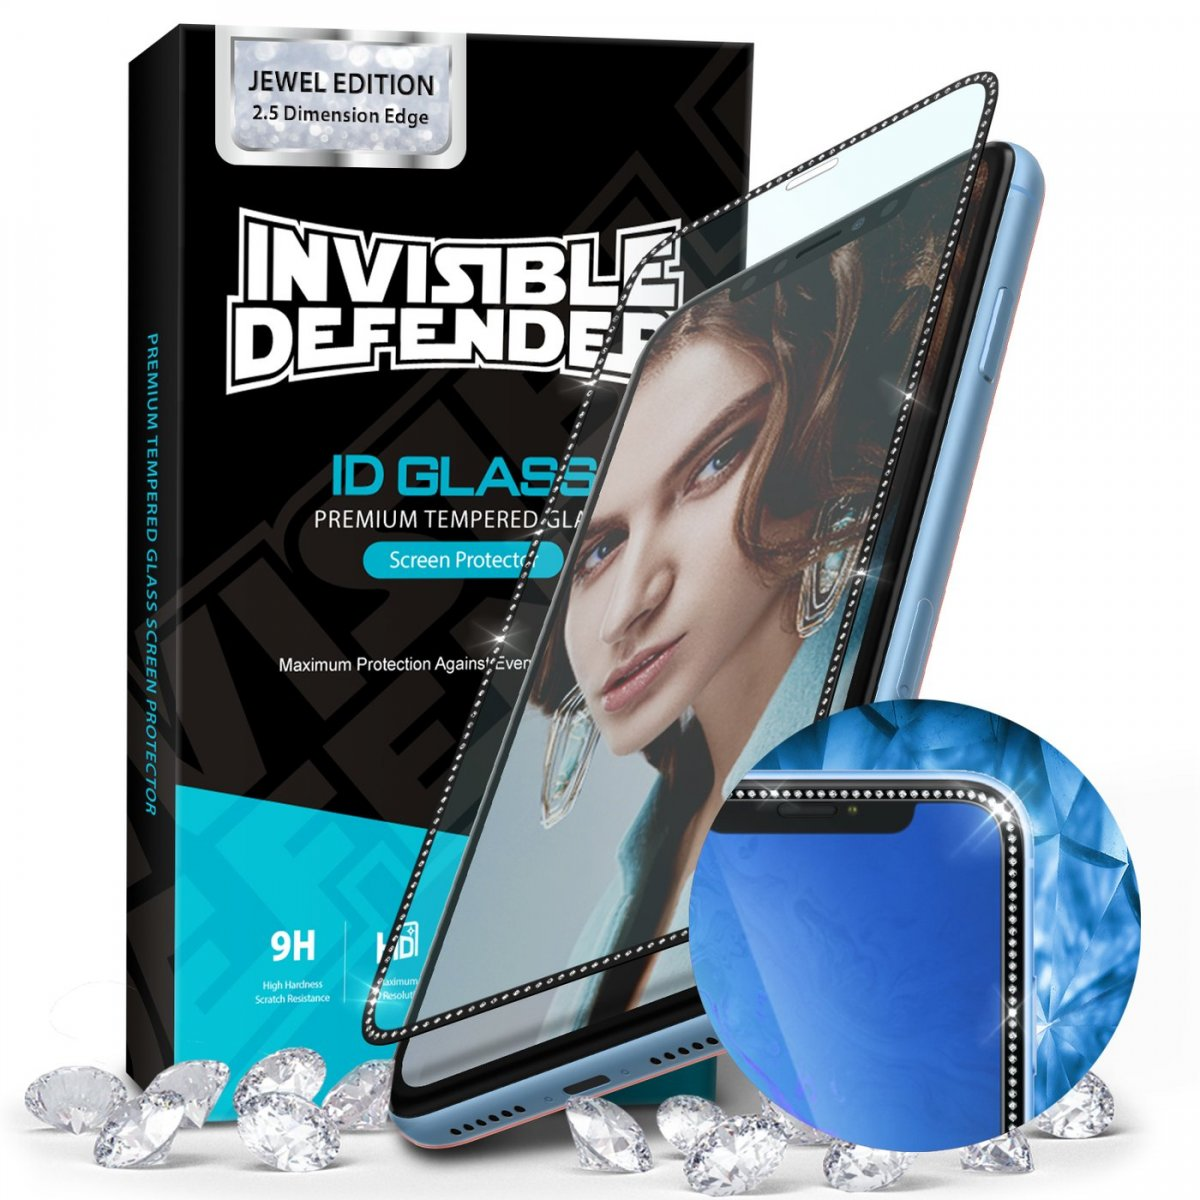 Tvrzené sklo Ringke Invisible Defender ID GLASS Jewel Edition iPhone 11 Pro/XS/X